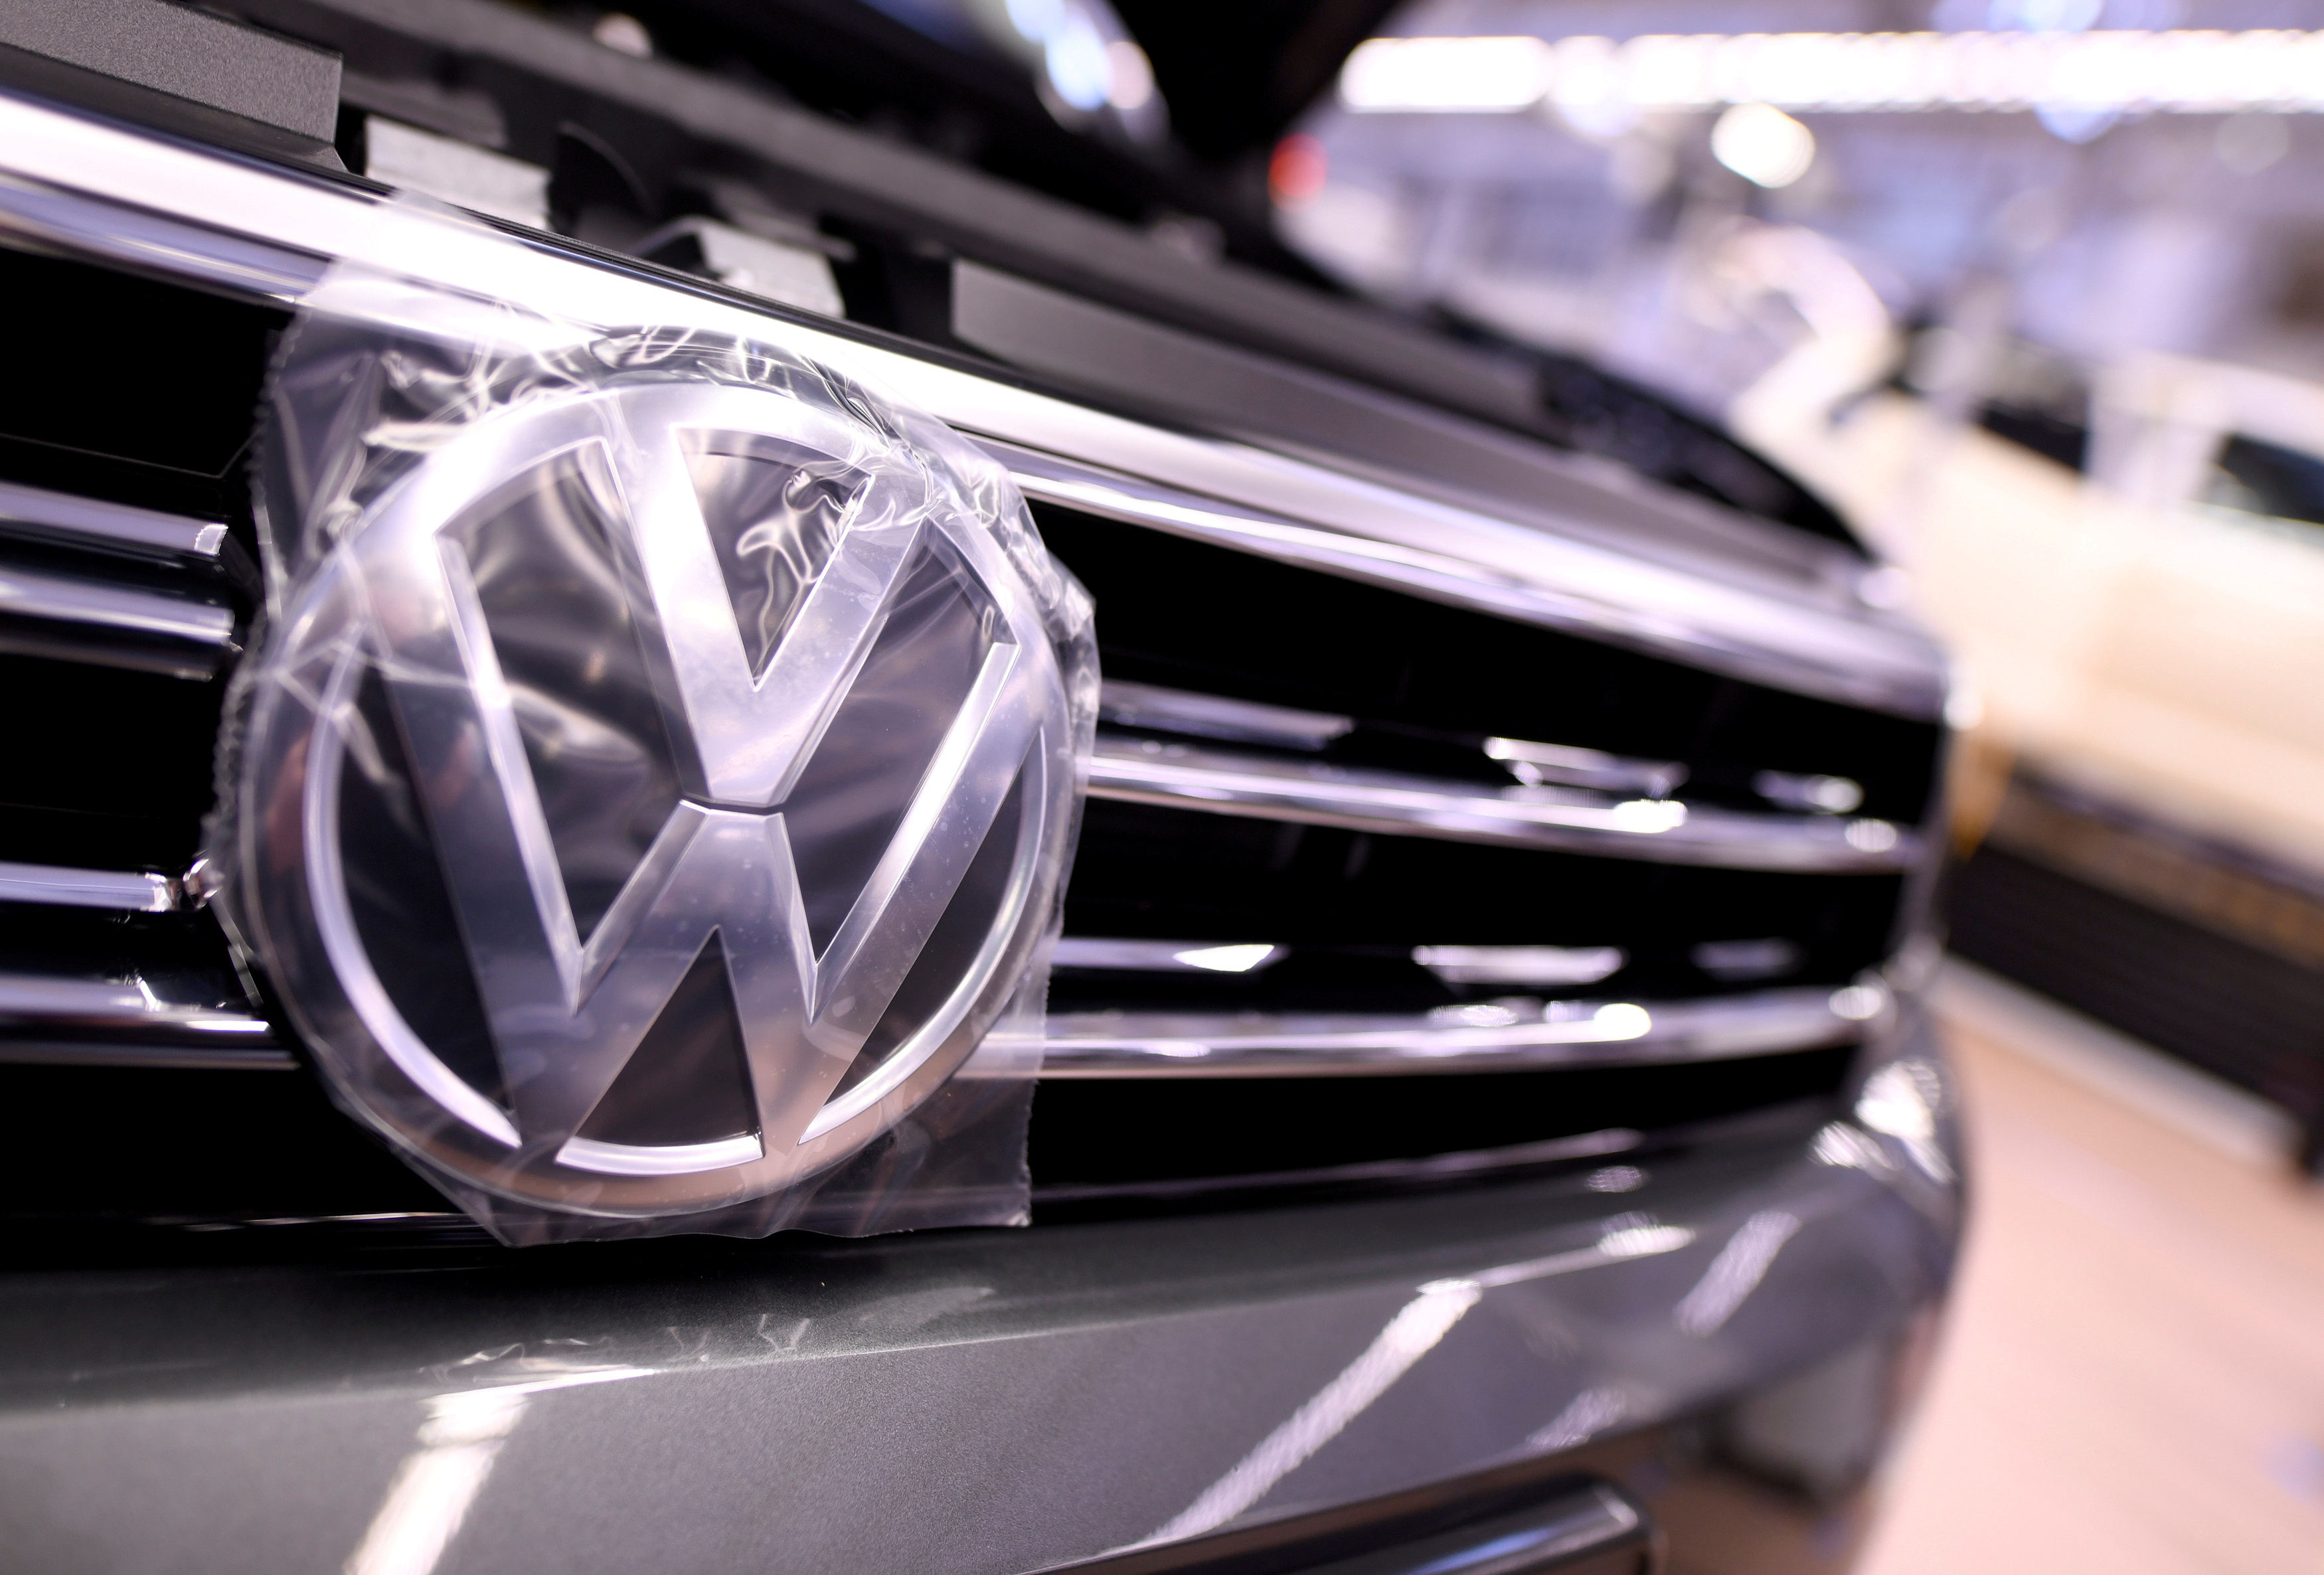 A Volkswagen logo is pictured in a production line at the Volkswagen plant in Wolfsburg, Germany March 1, 2019. Picture taken March 1, 2019. REUTERS/Fabian Bimmer/File Photo